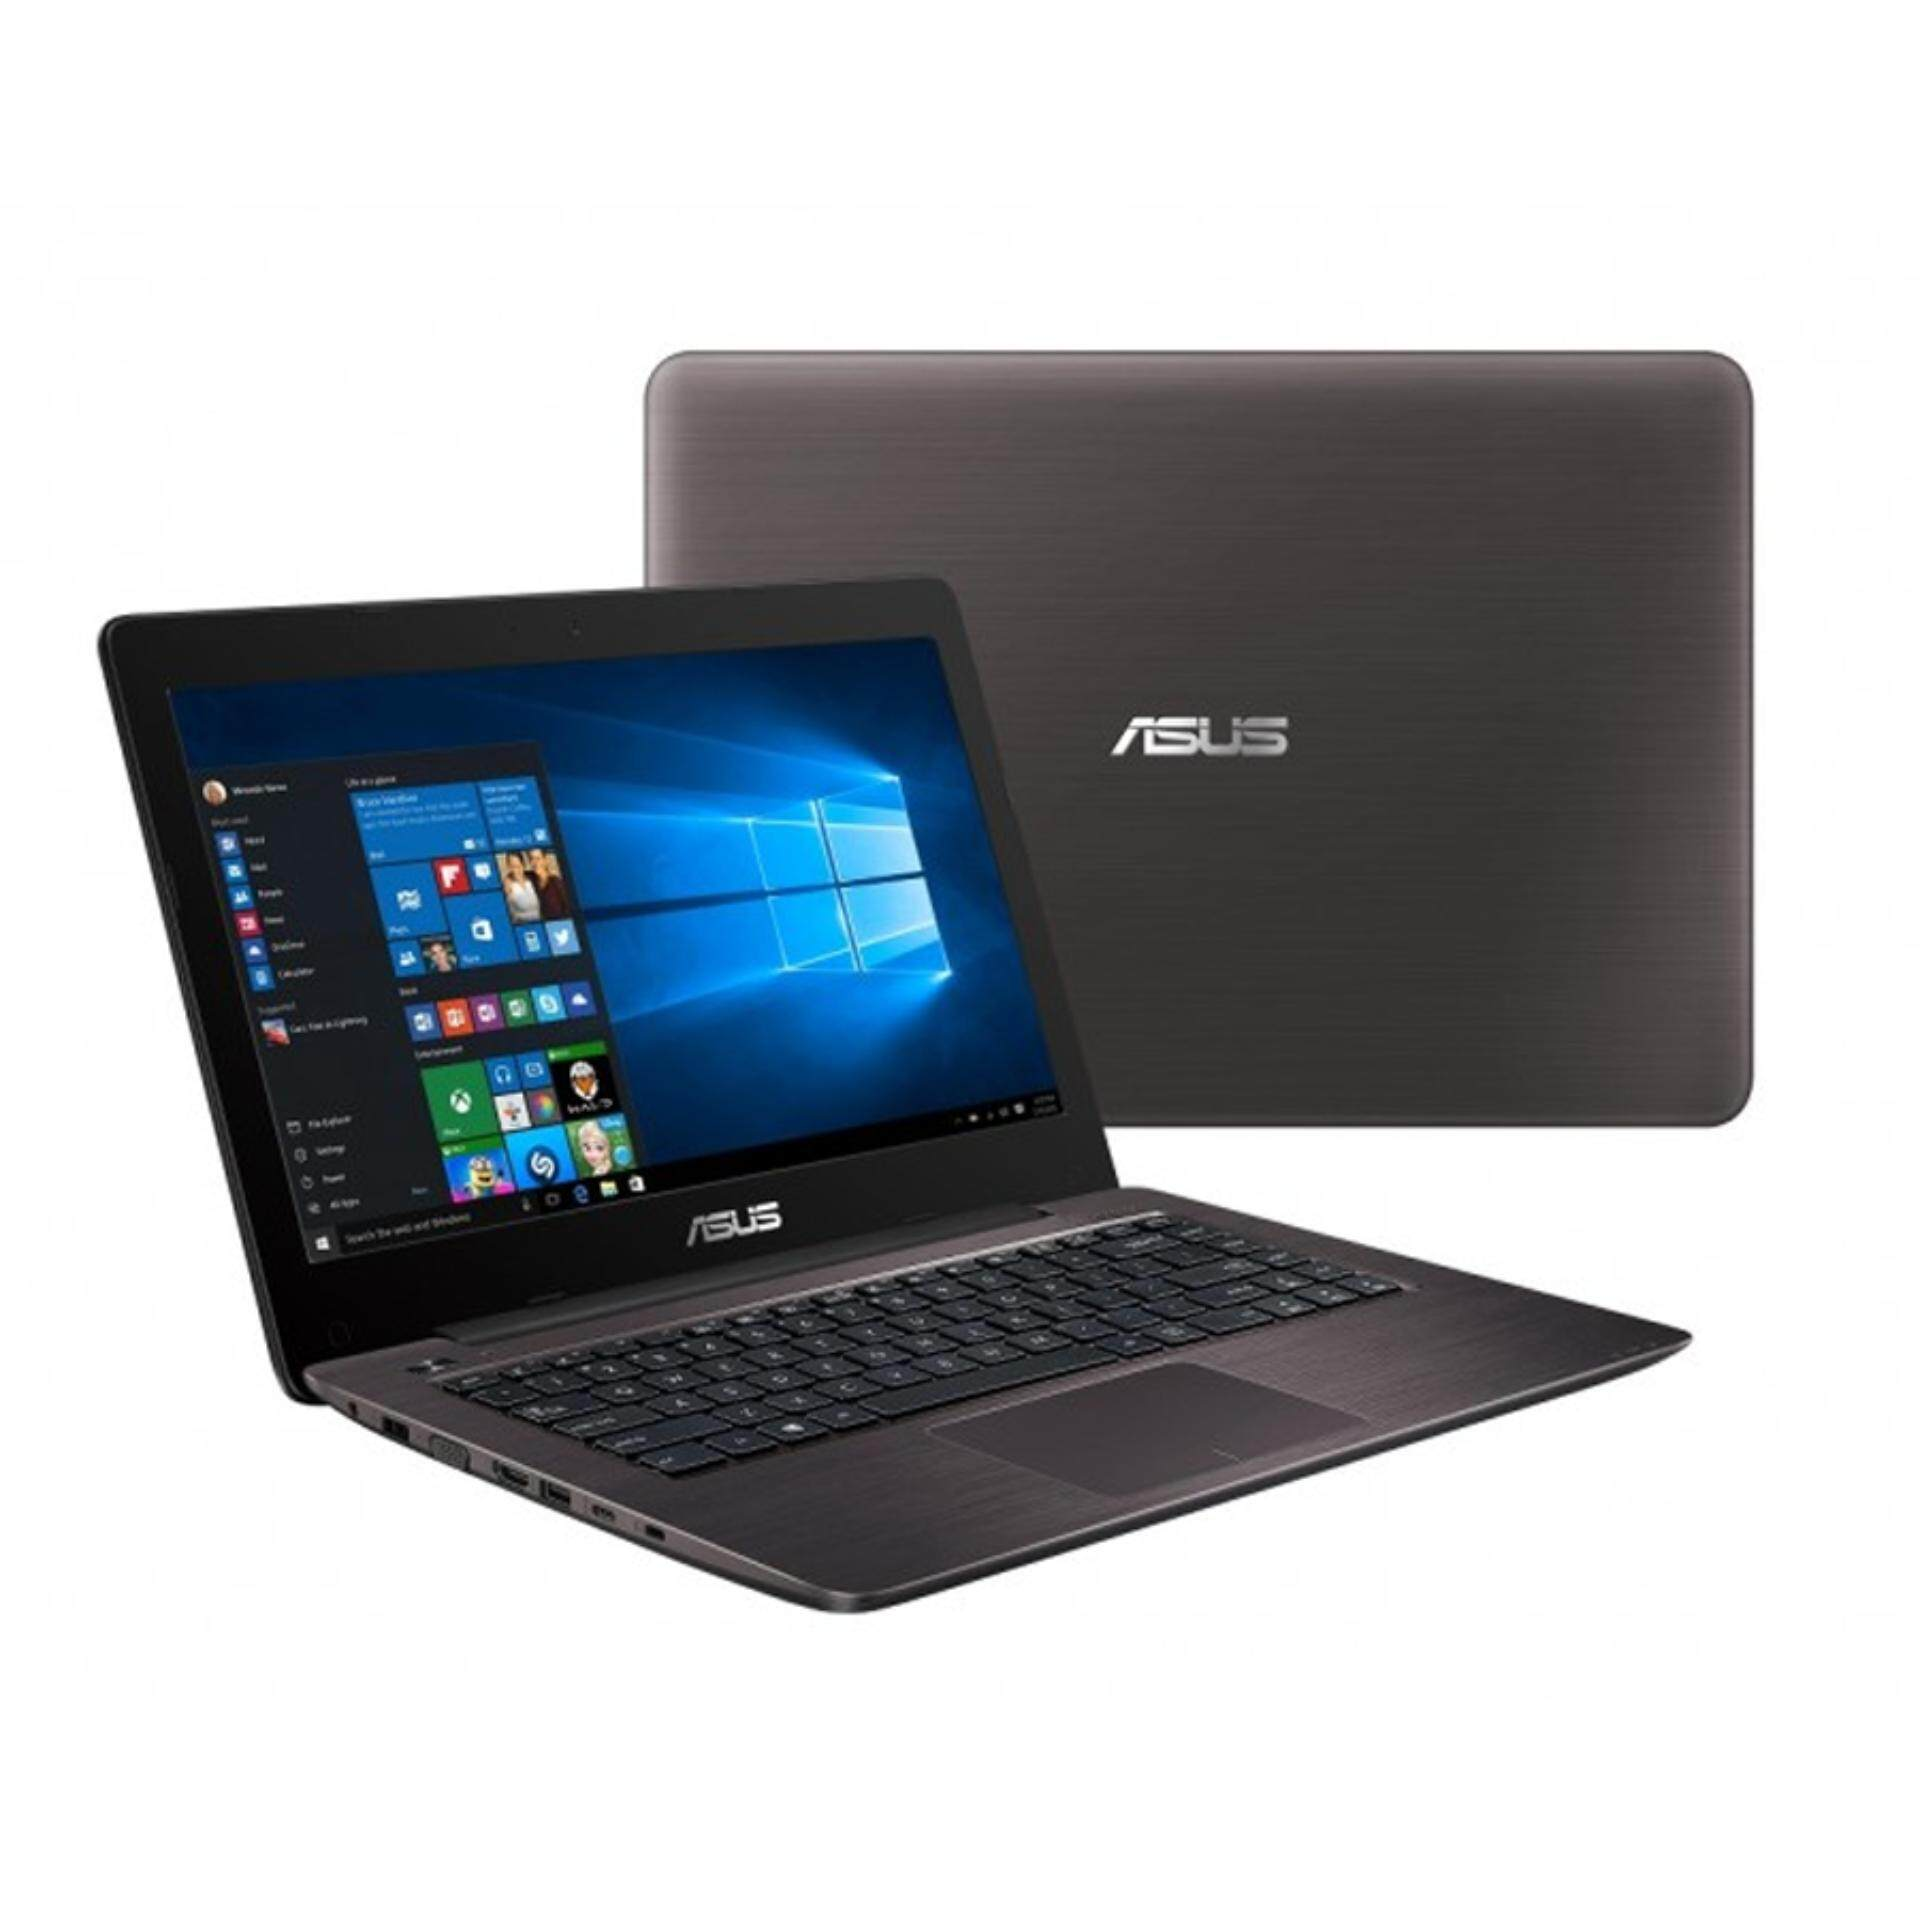 Asus A-Series A456U-RFA131T 14 FHD Laptop Brown (i5-7200, 4GB, 1TB, GT930MX 2GB, W10H) Malaysia